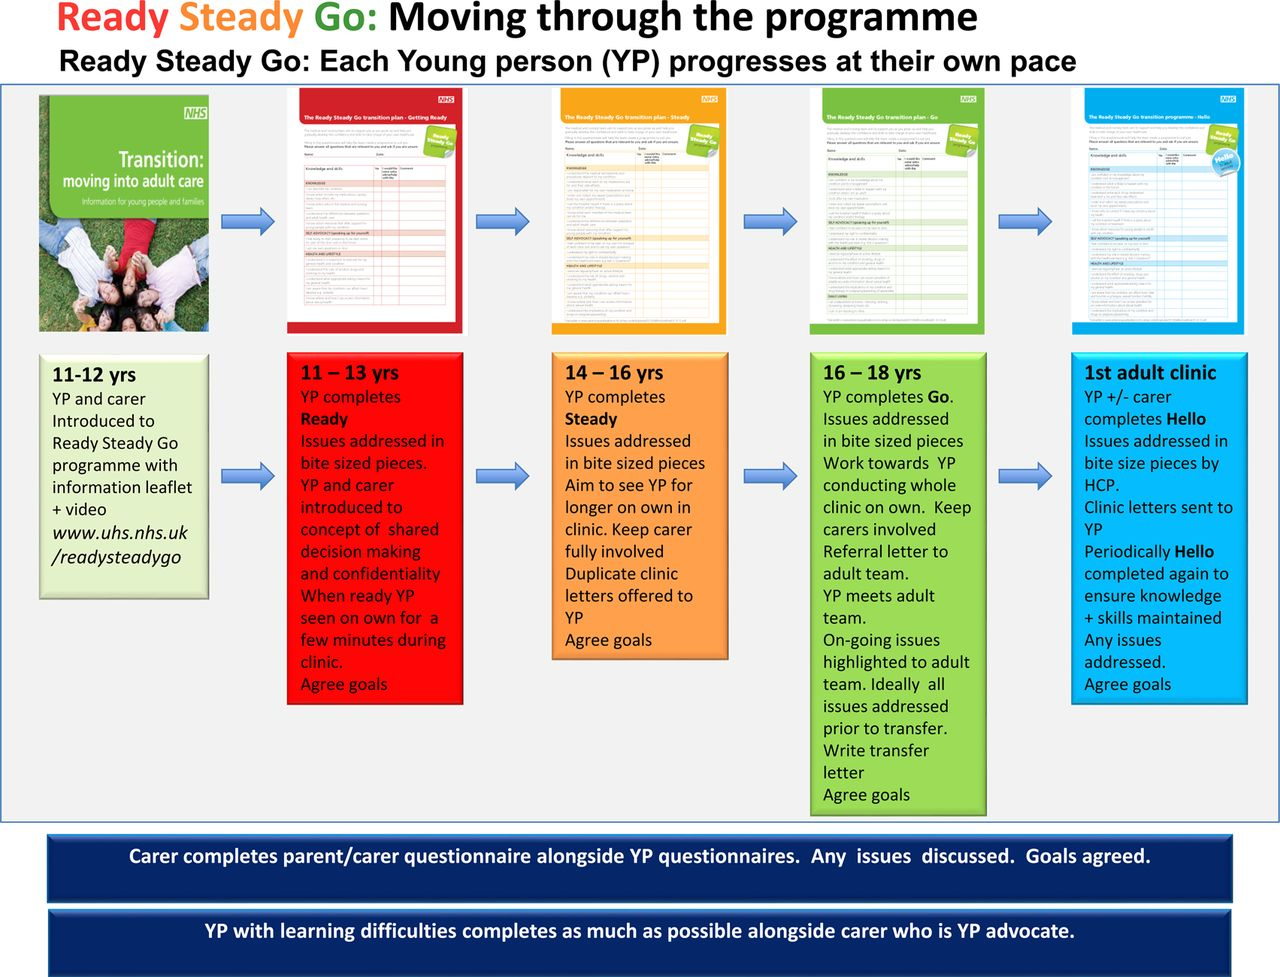 implementing transition  ready steady go